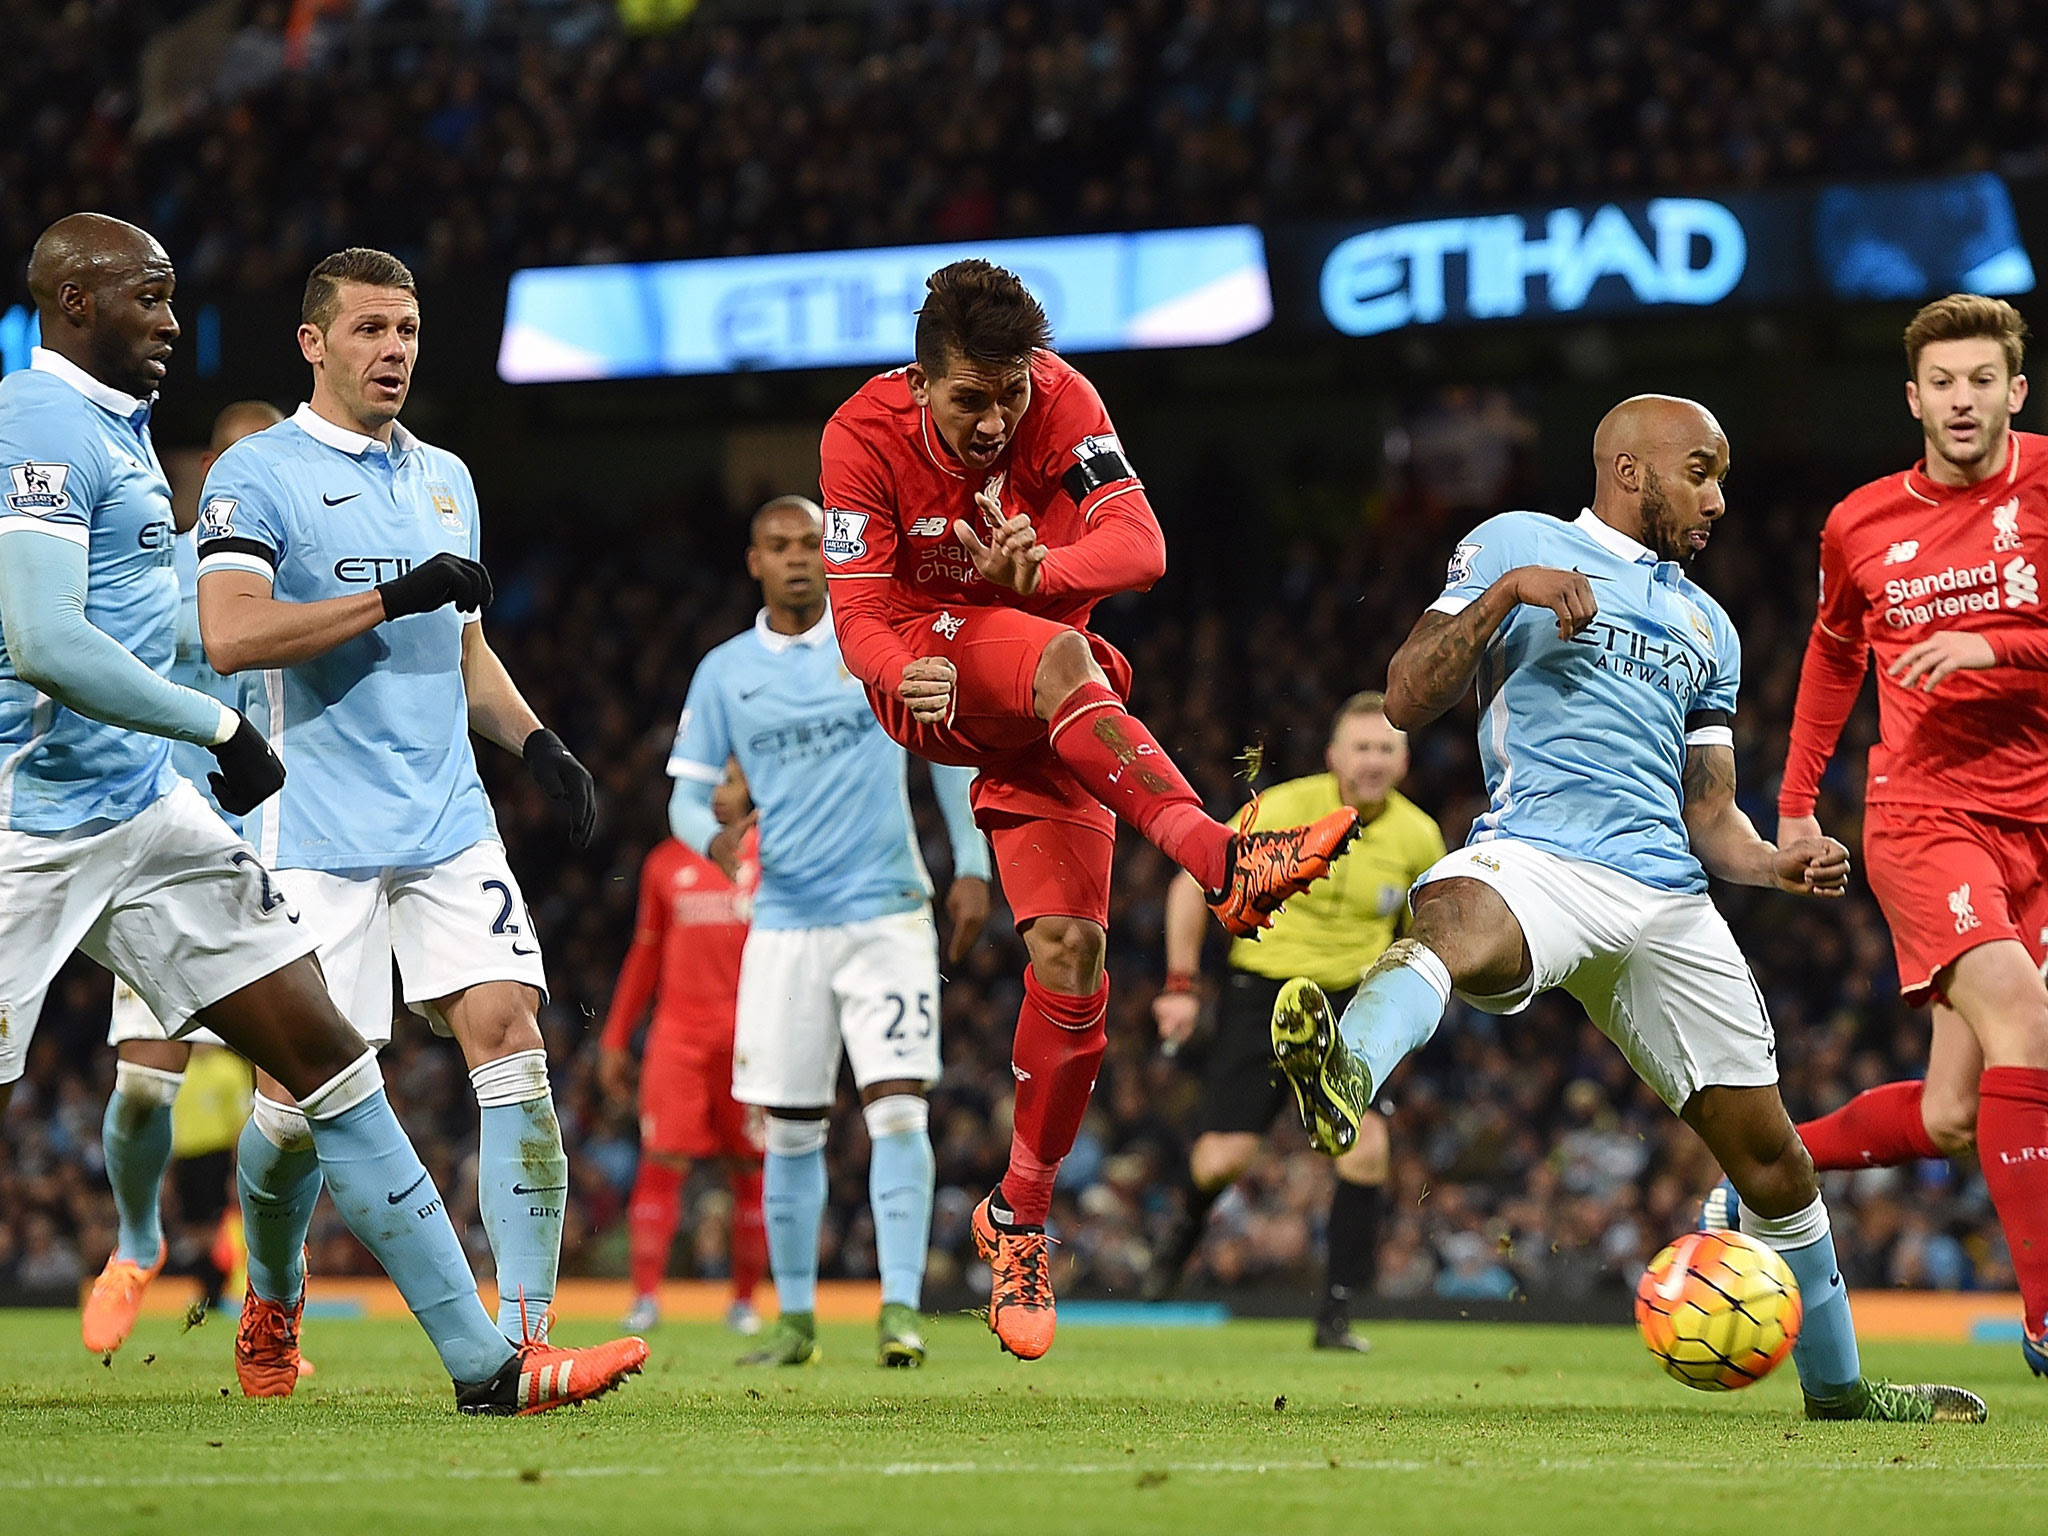 19th March 2017 Manchester City Vs Liverpool Live Online ...